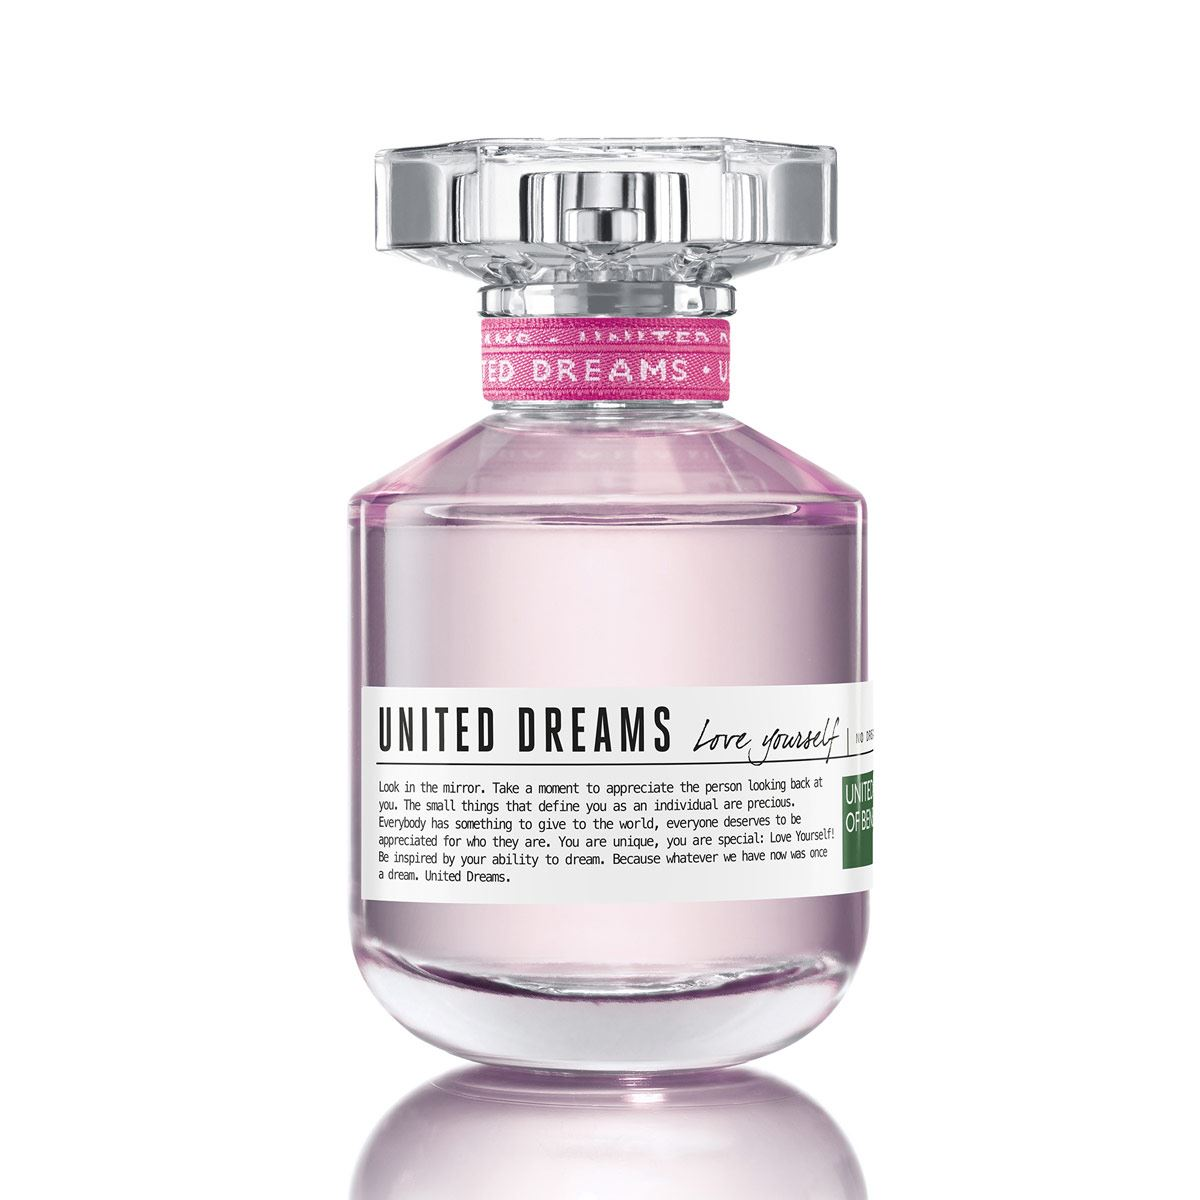 Fragancia para dama, benetton united dreams love yourself edt 80 ml  - Sanborns